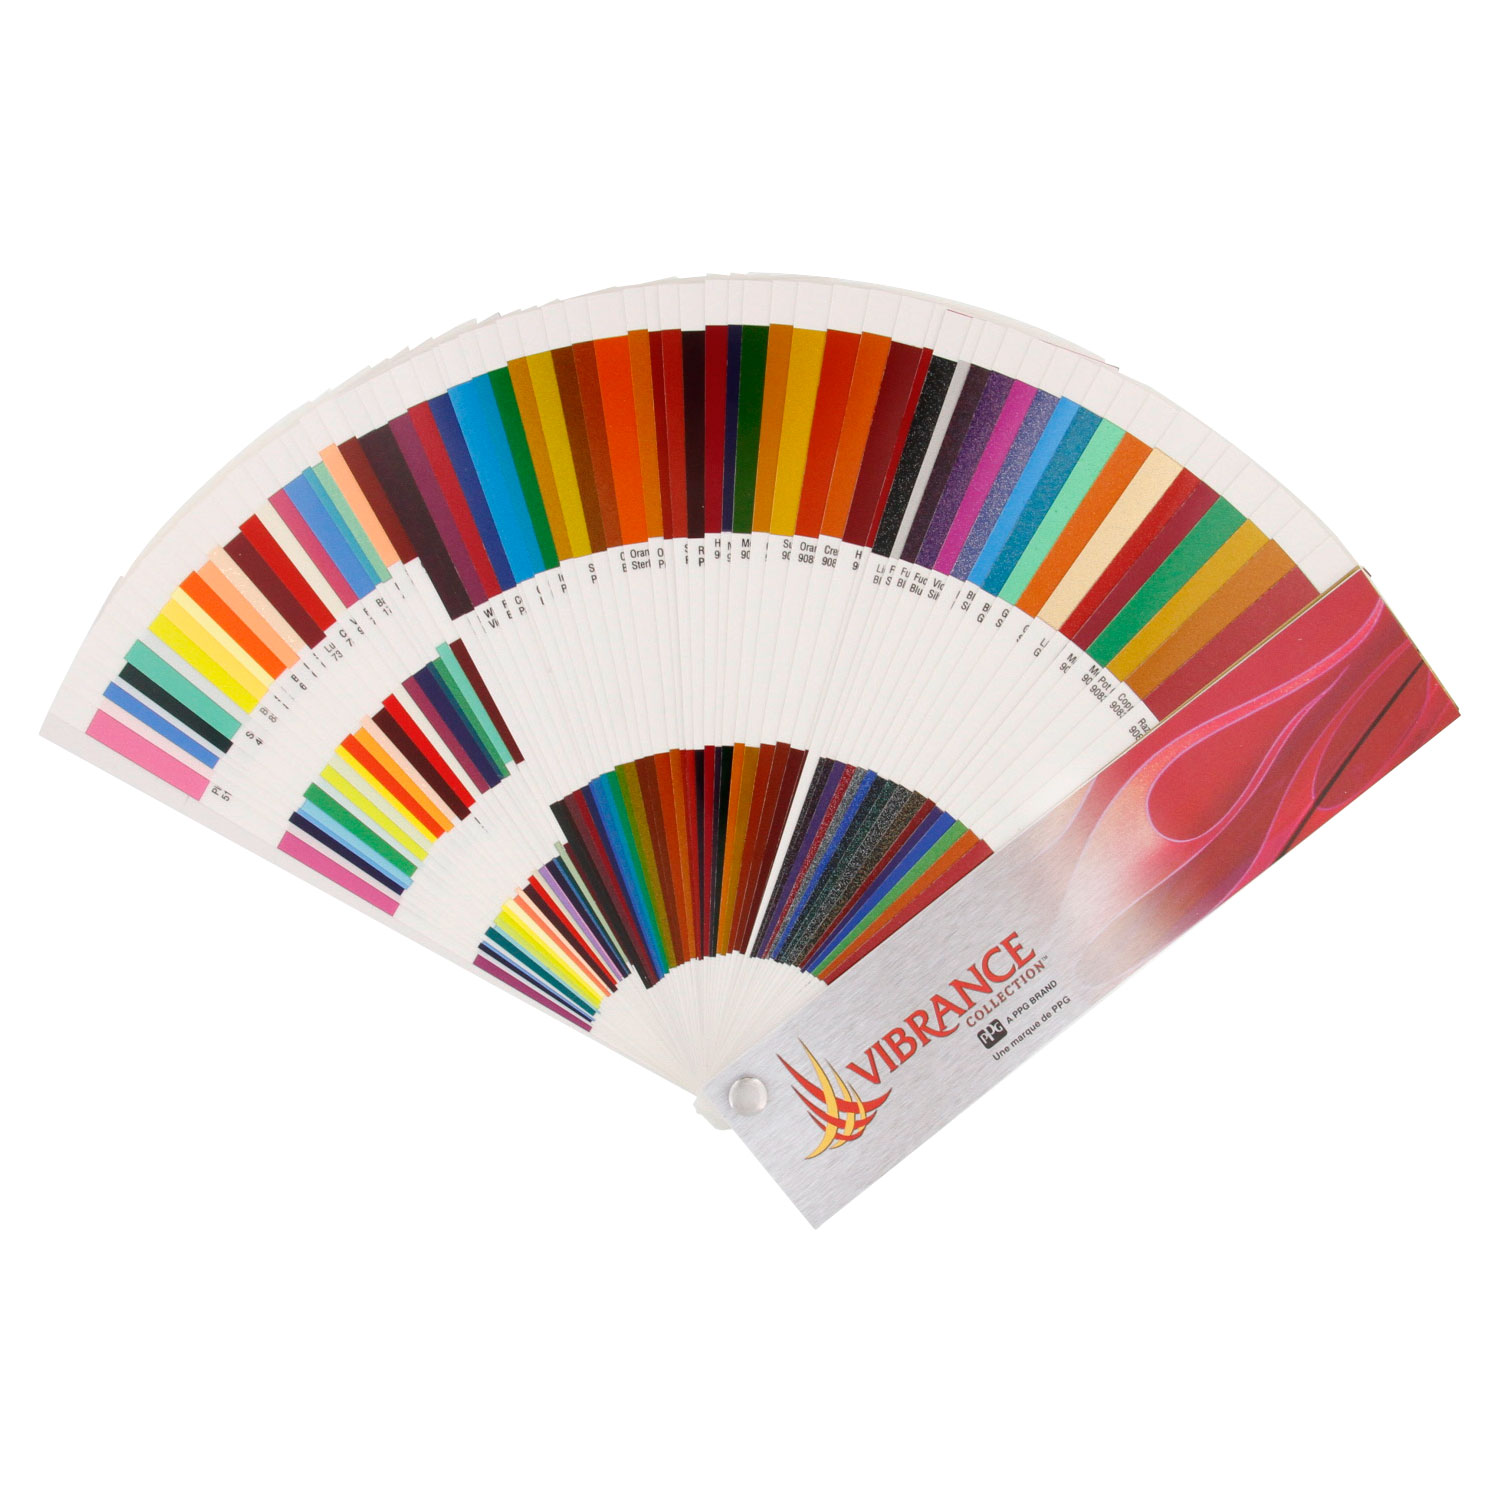 Ppg vibrance color cards are the most comprehensive available